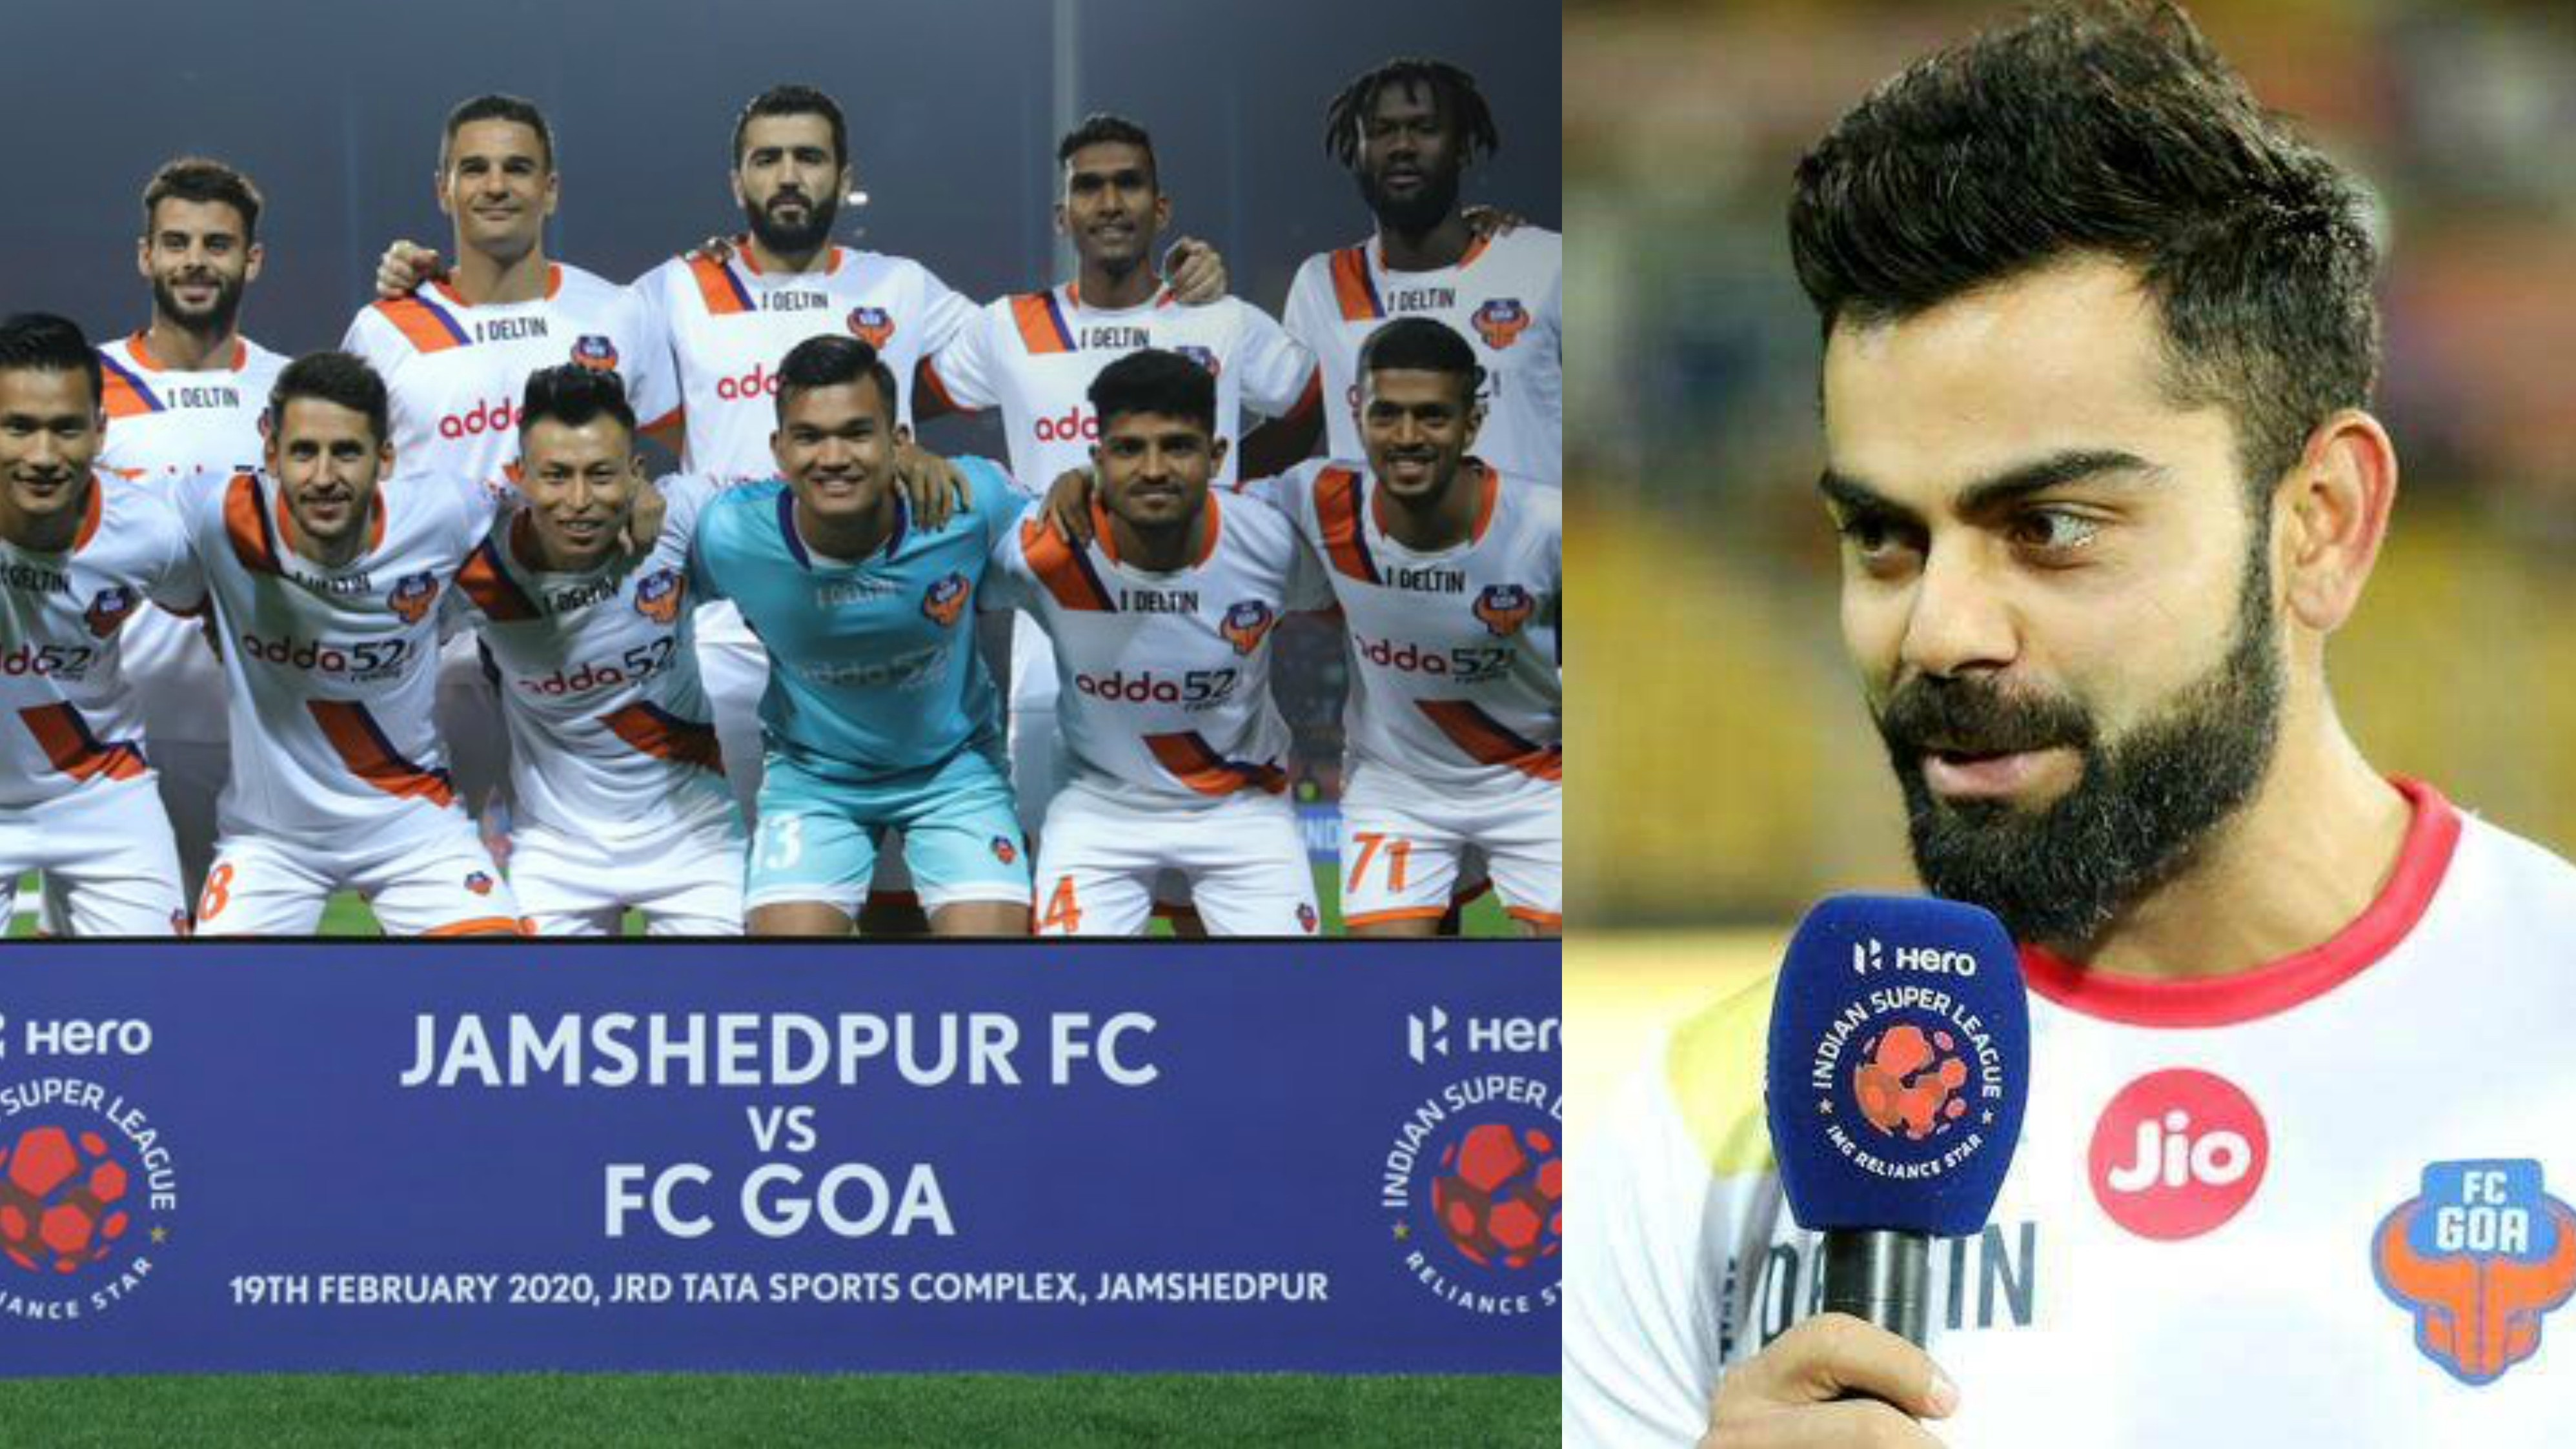 Owner Virat Kohli hails FC Goa for becoming first Indian club to qualify for AFC Champions League